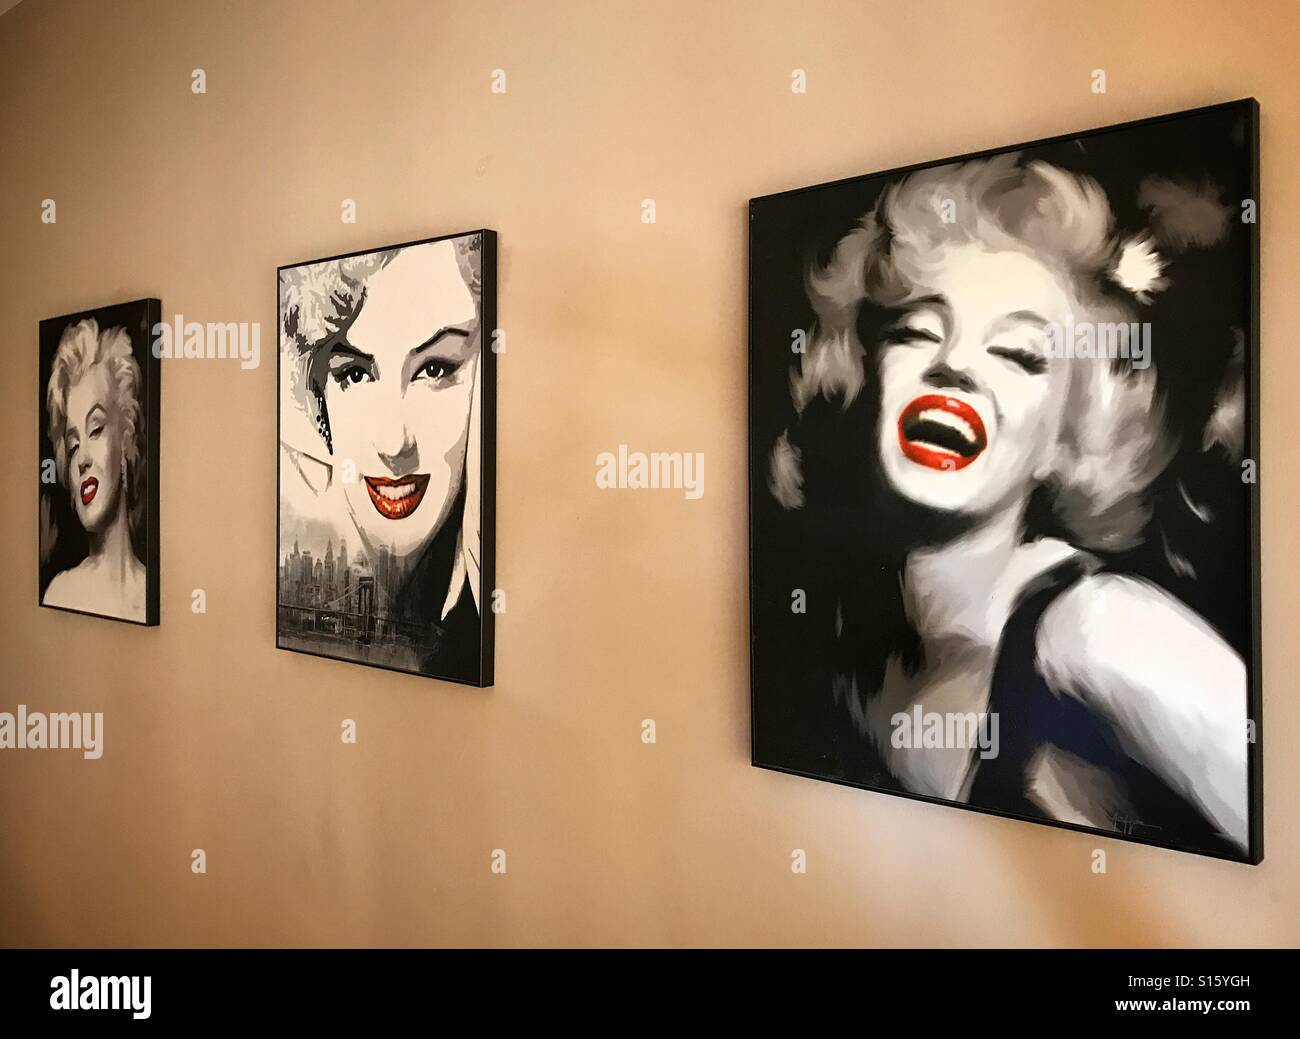 Three portraits of Marilyn Monroe on canvass displayed on the wall of a gallery - Stock Image